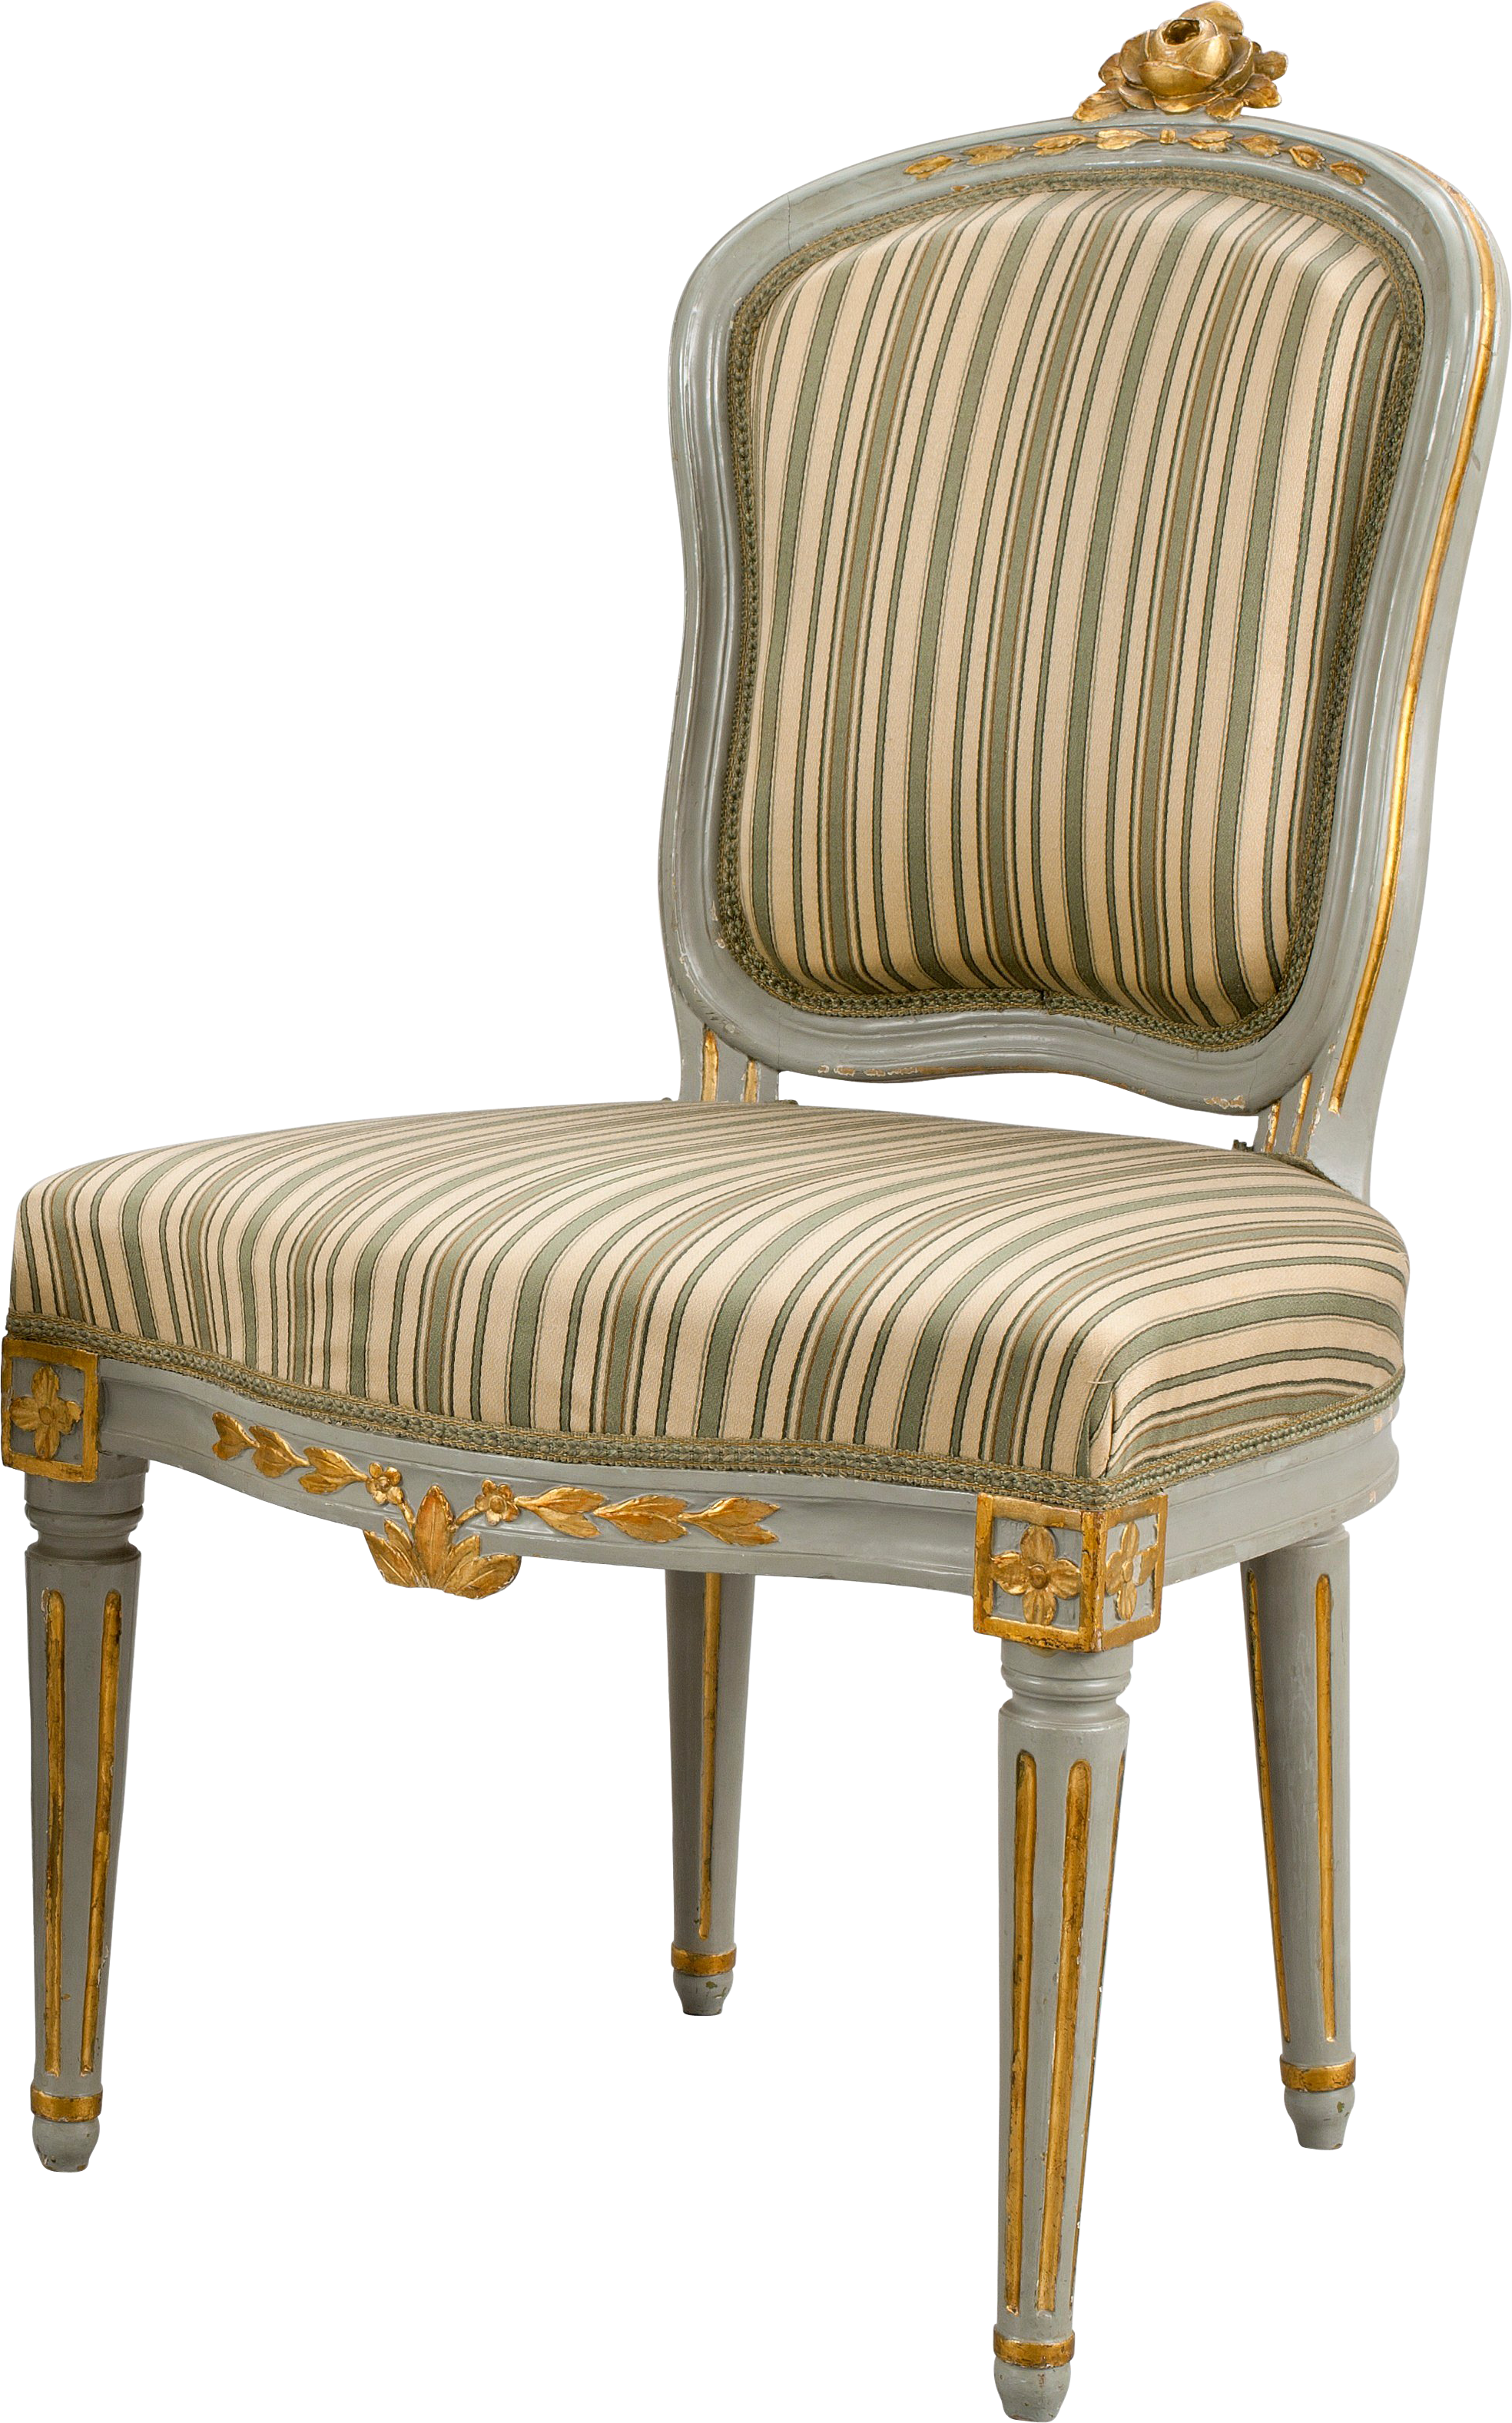 King chair png. Transparent images all clipart